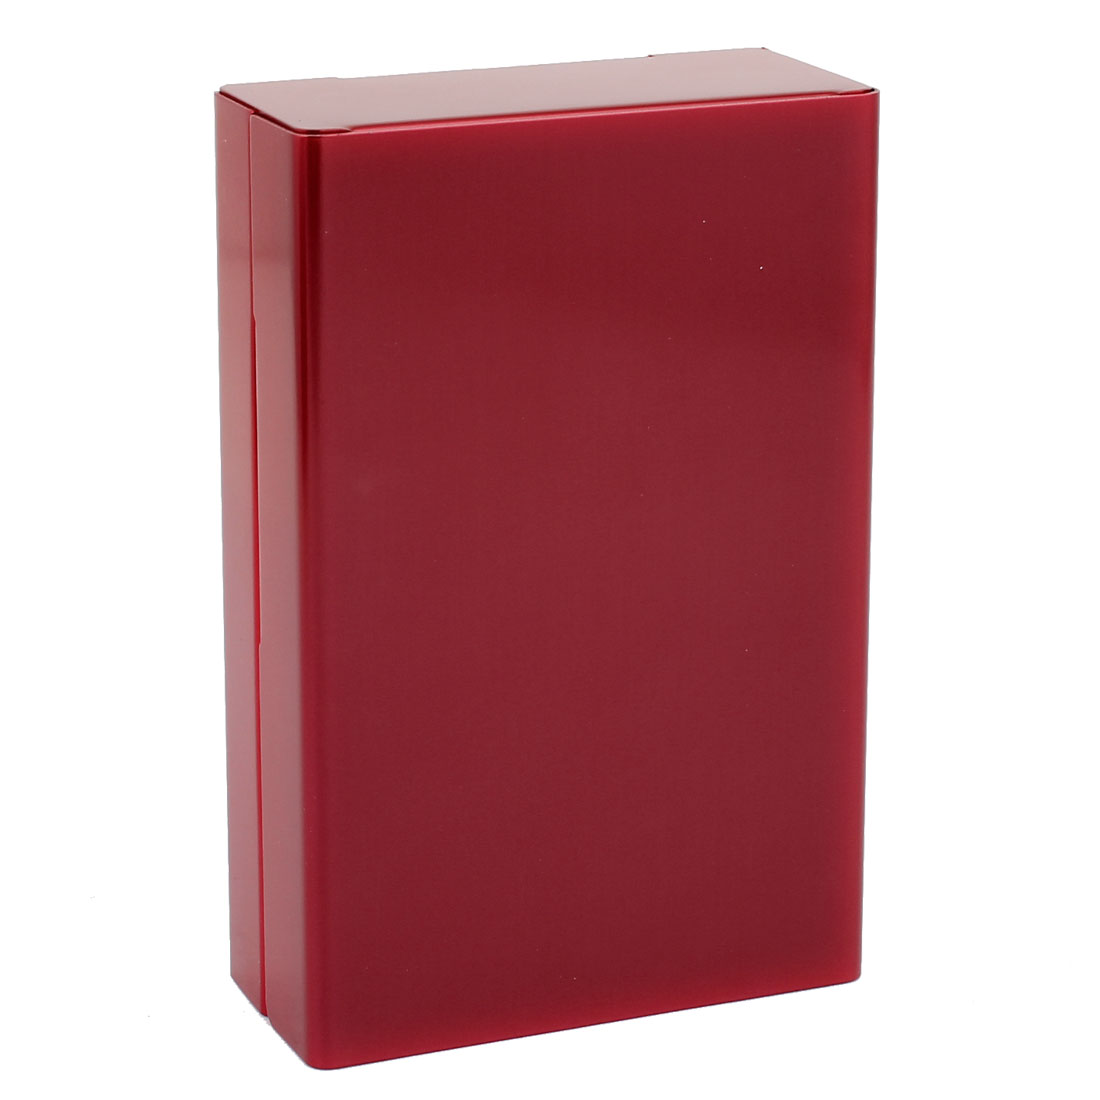 Slide Type Red Aluminum Rectangle Shape Cigarette Cigar Case Box